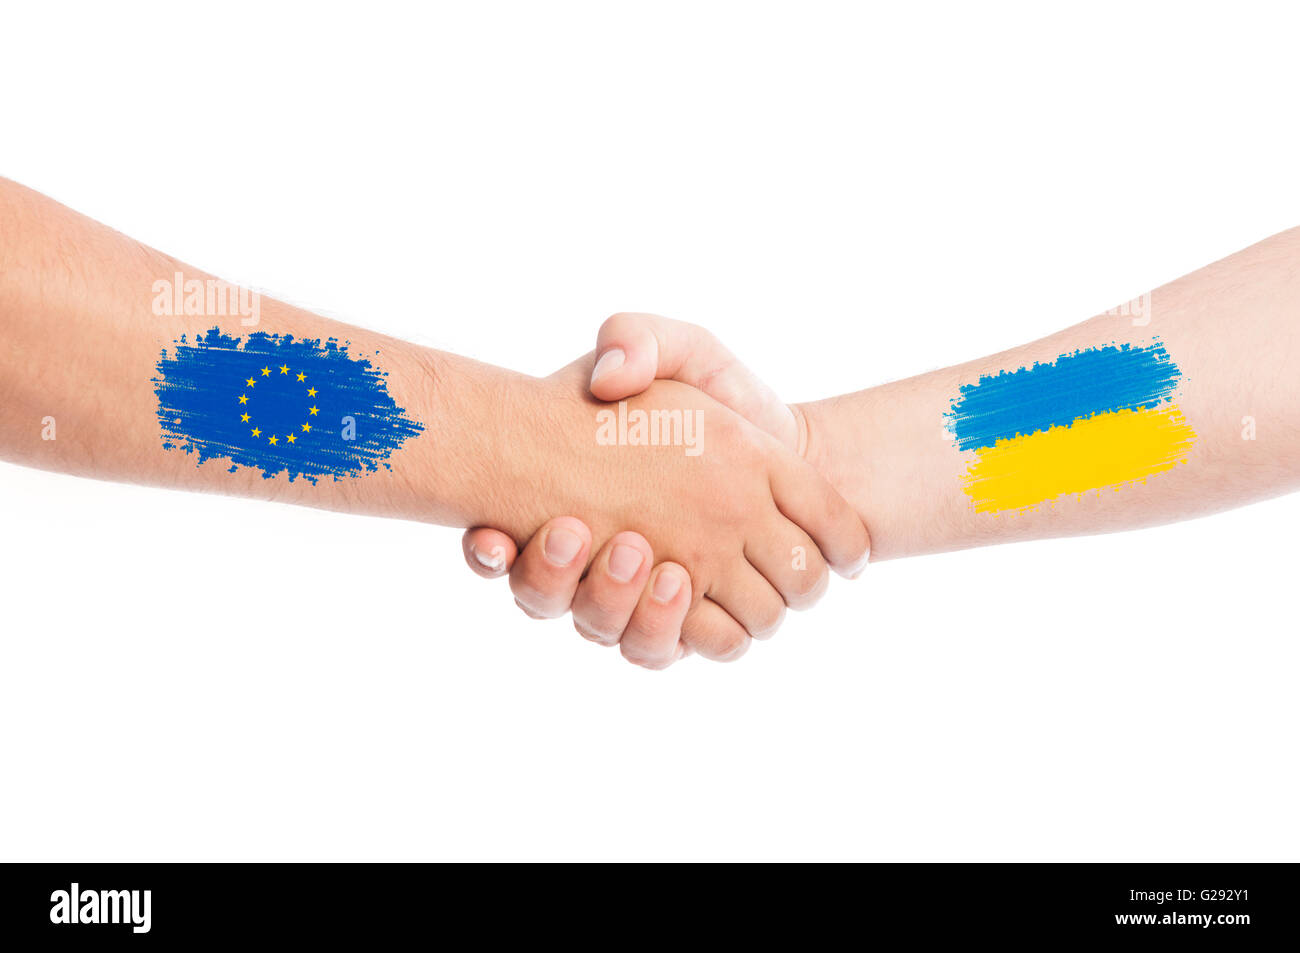 European Union and Ukraine shaking hands concept isolated on white background - Stock Image